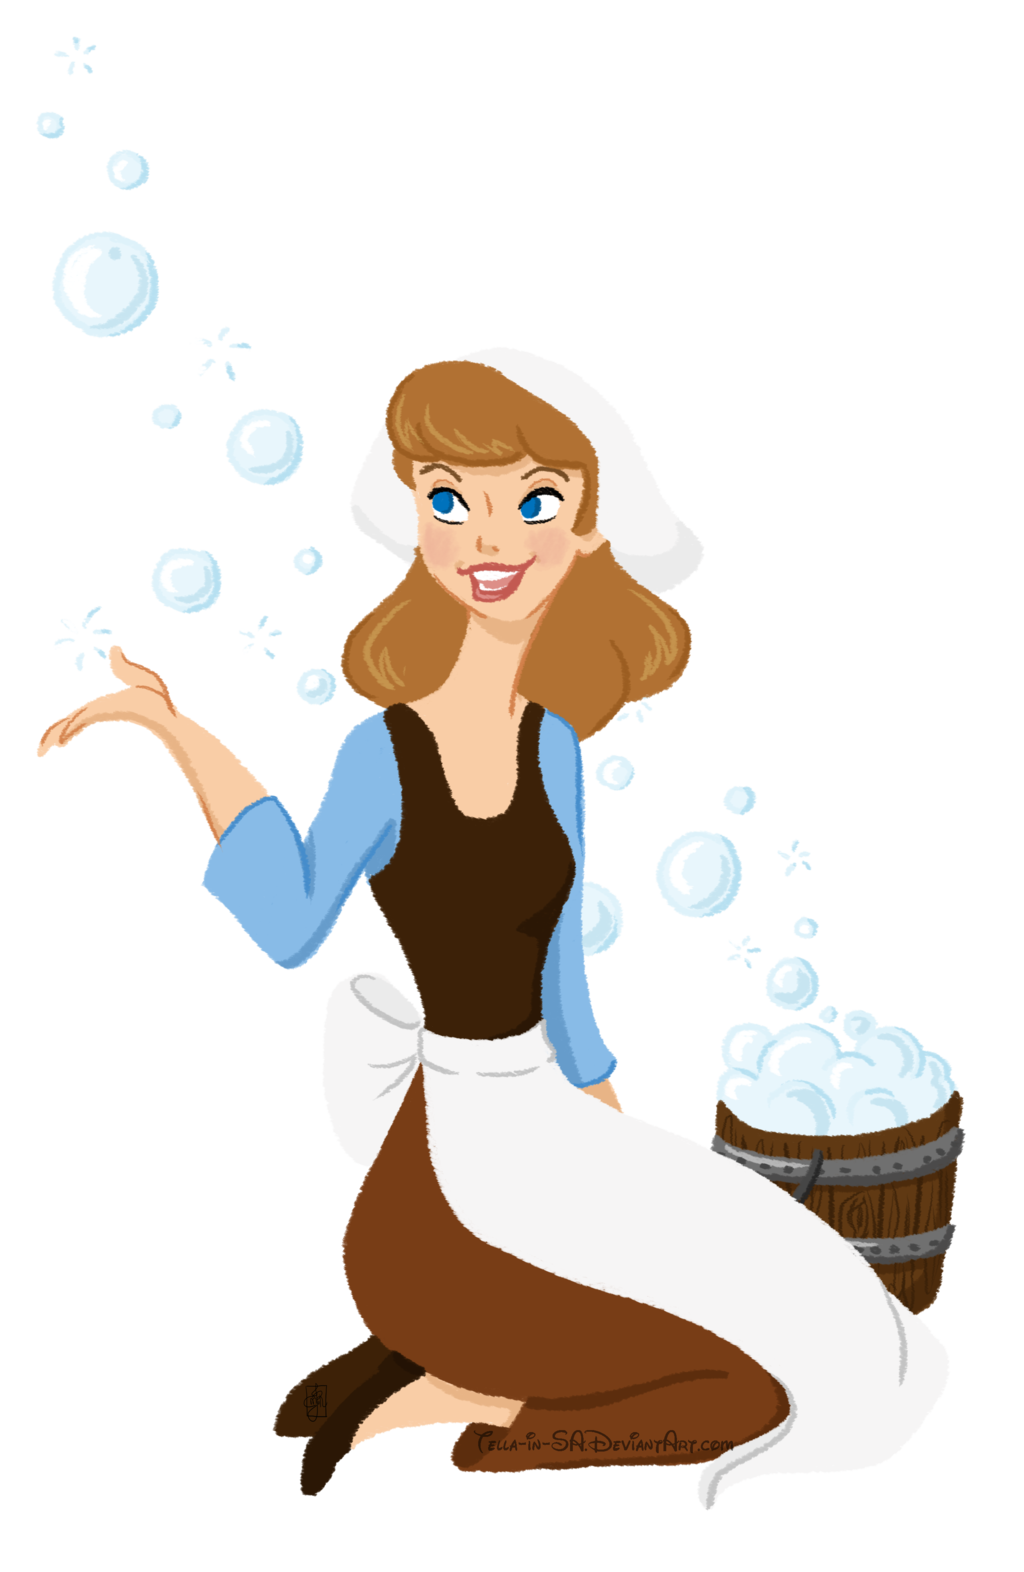 Peasant princess cinderella by. Housekeeping clipart maiden